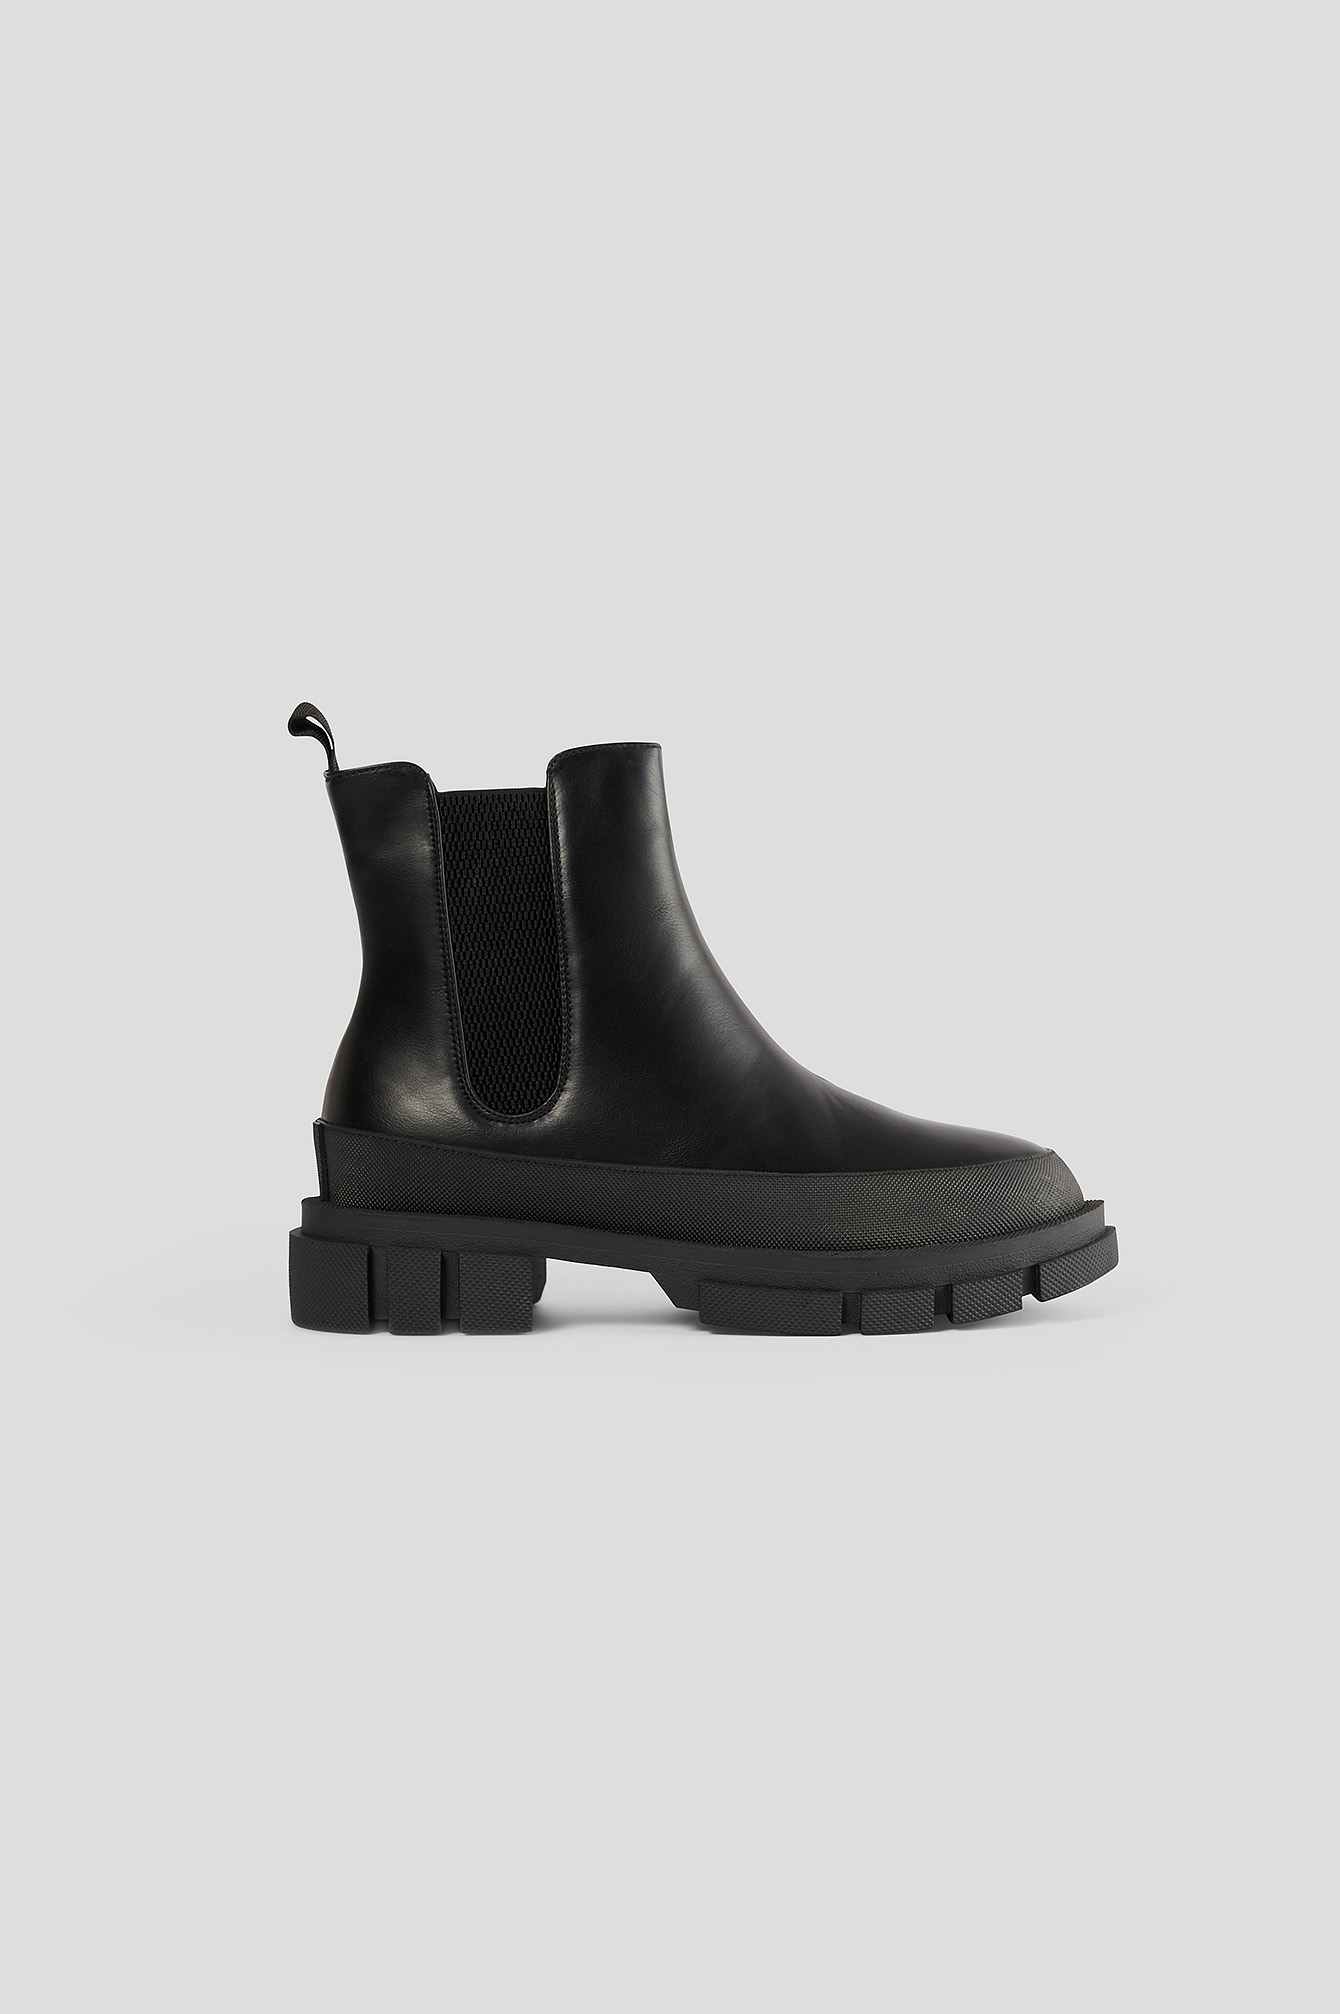 Black Covered Rubber Sole Boots